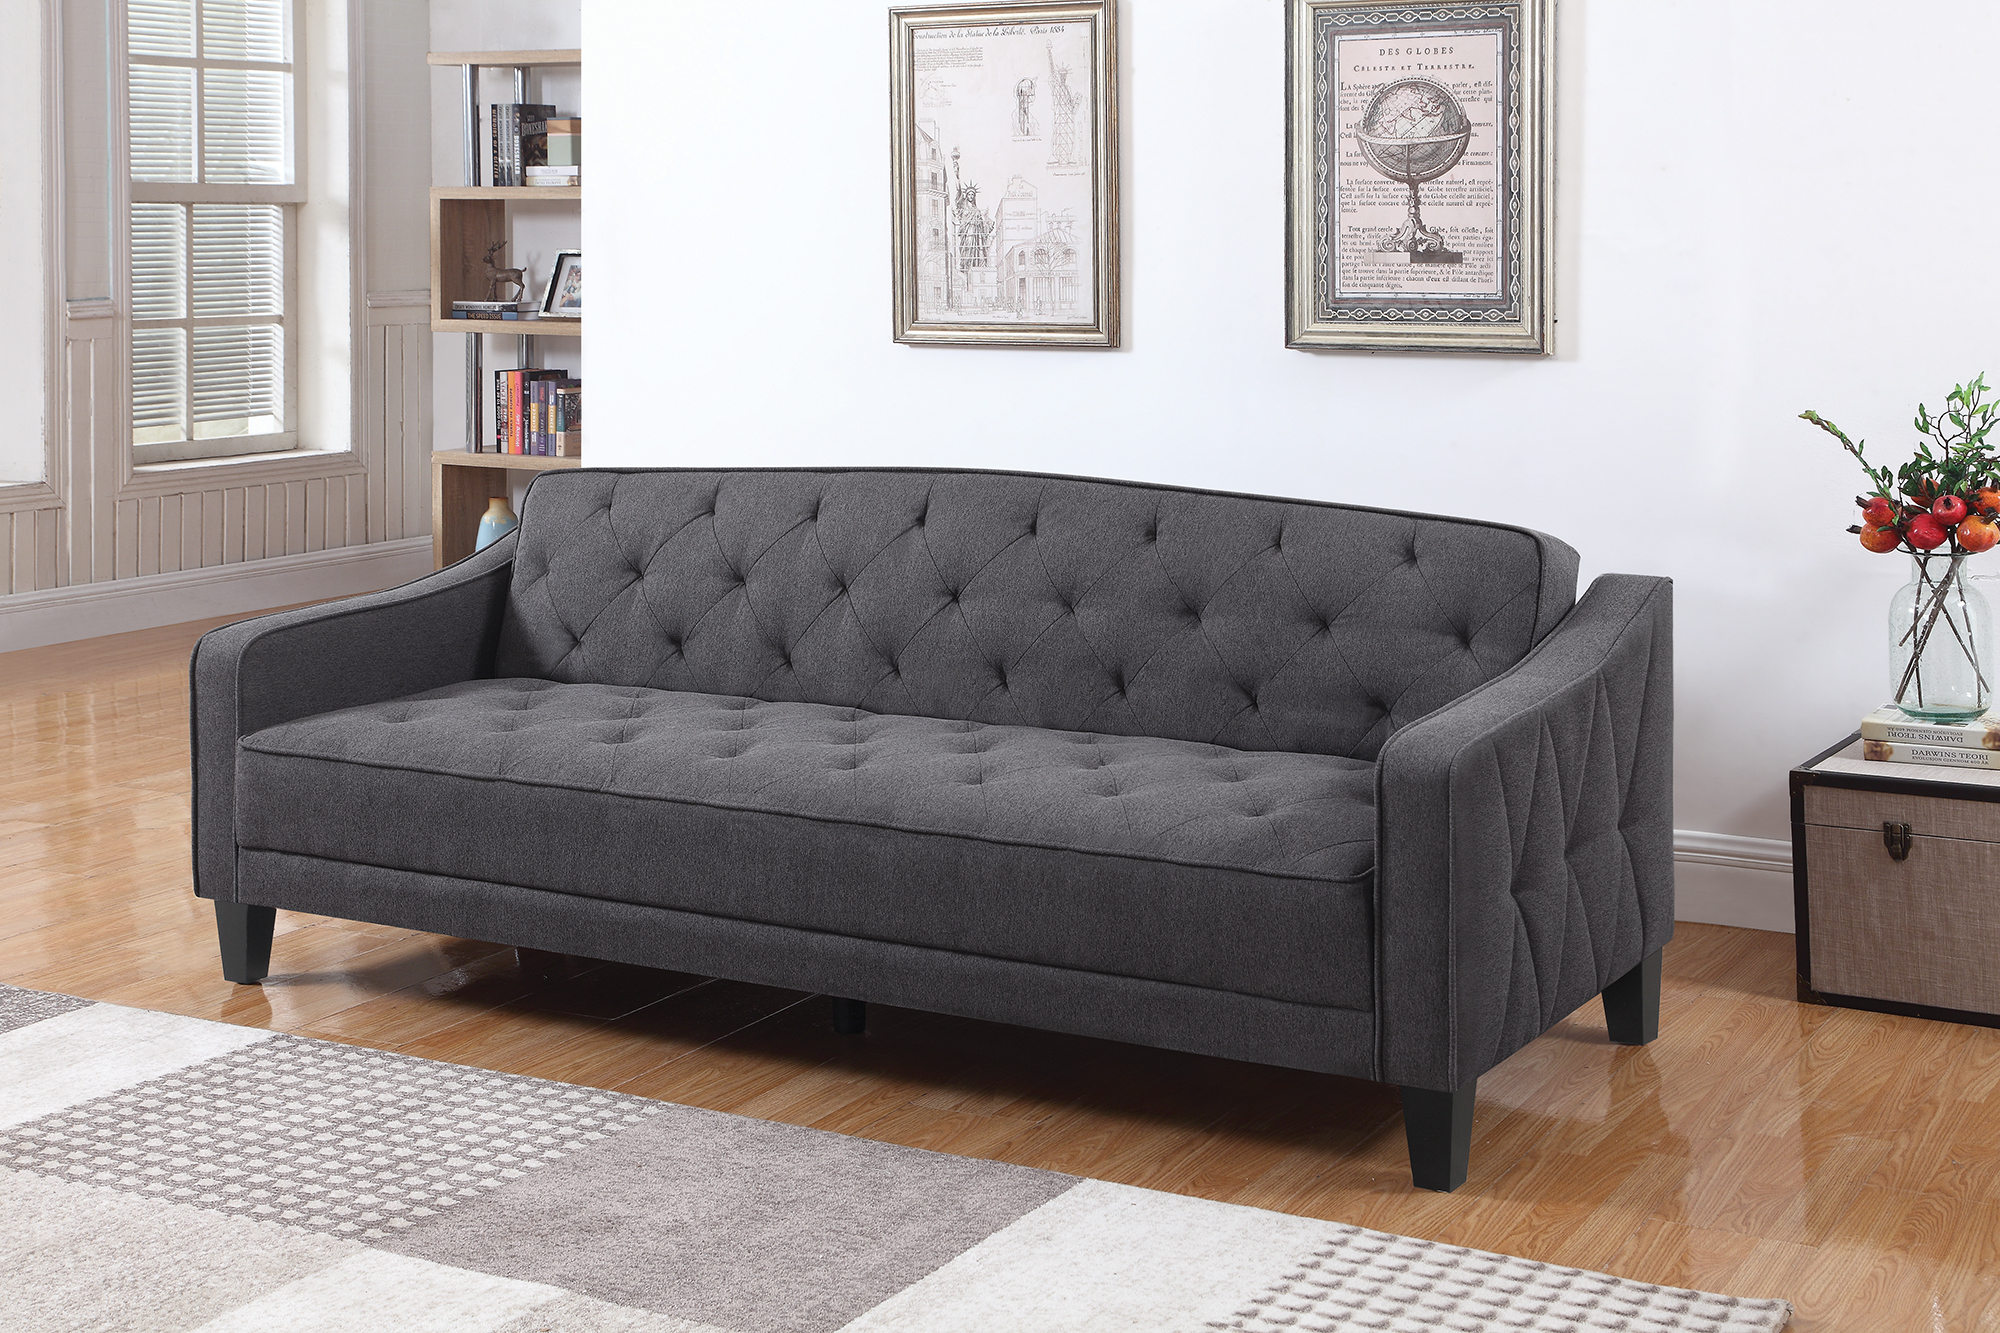 Ebay Sofa Grey Details About Coaster Fabric Sofa Bed With Dark Grey Finish 360016